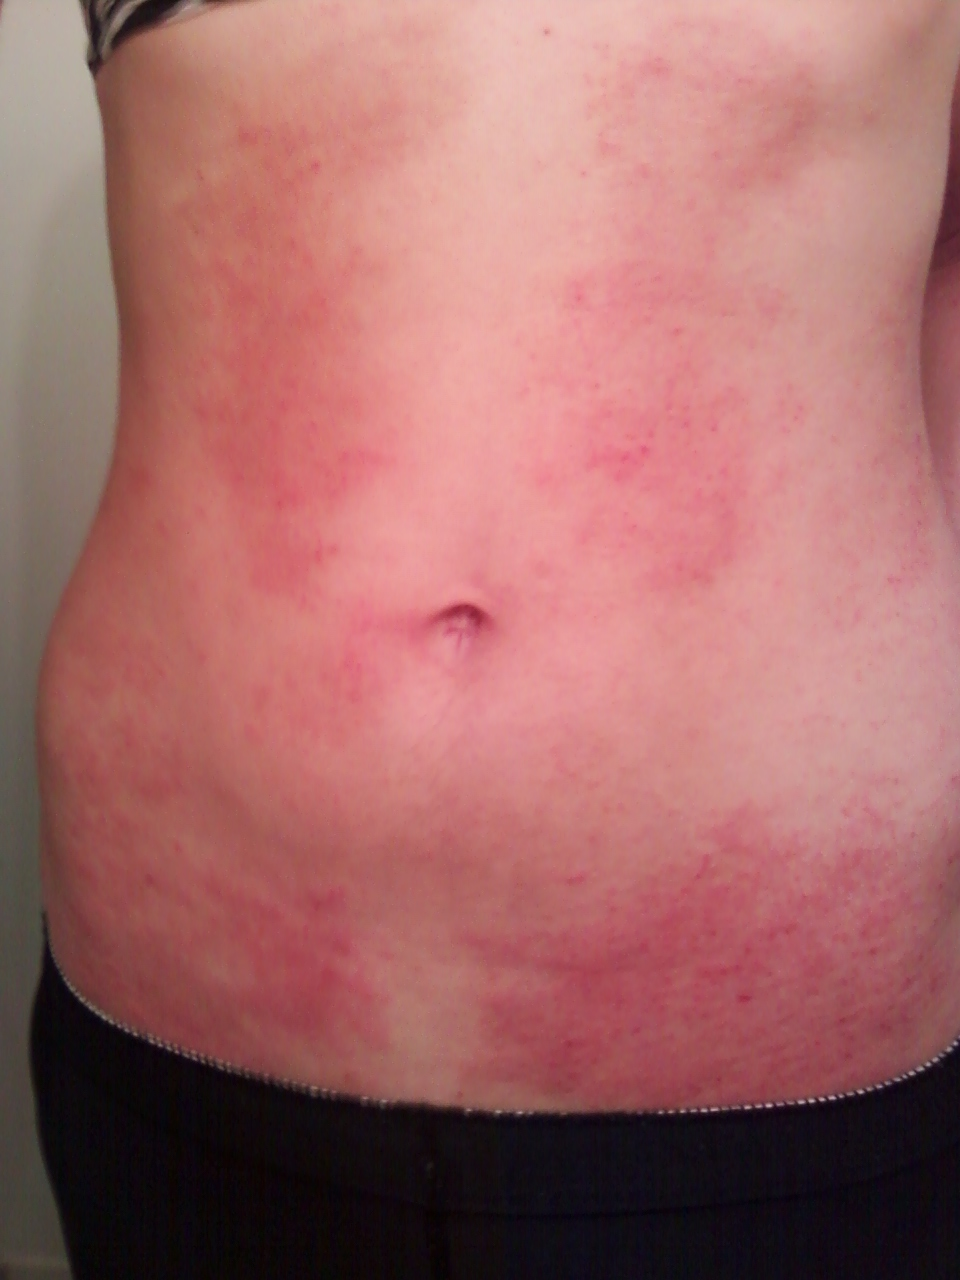 rash on torso and back #10